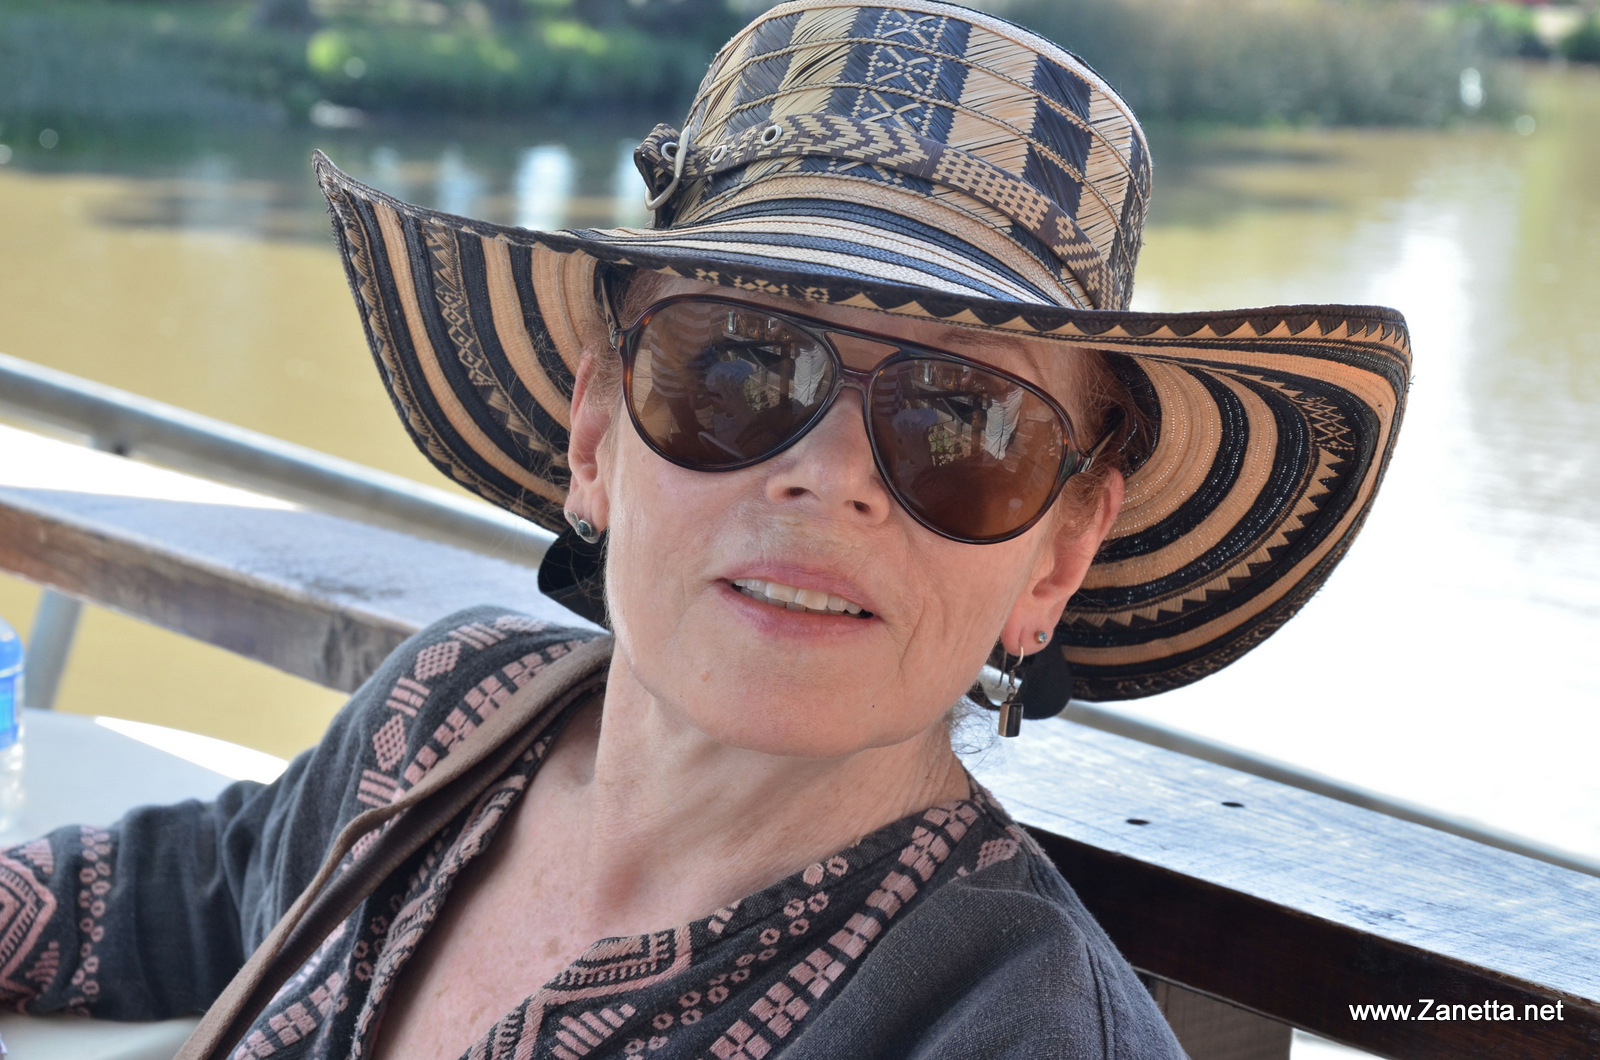 Anne enjoying the summer during a vacation abroad